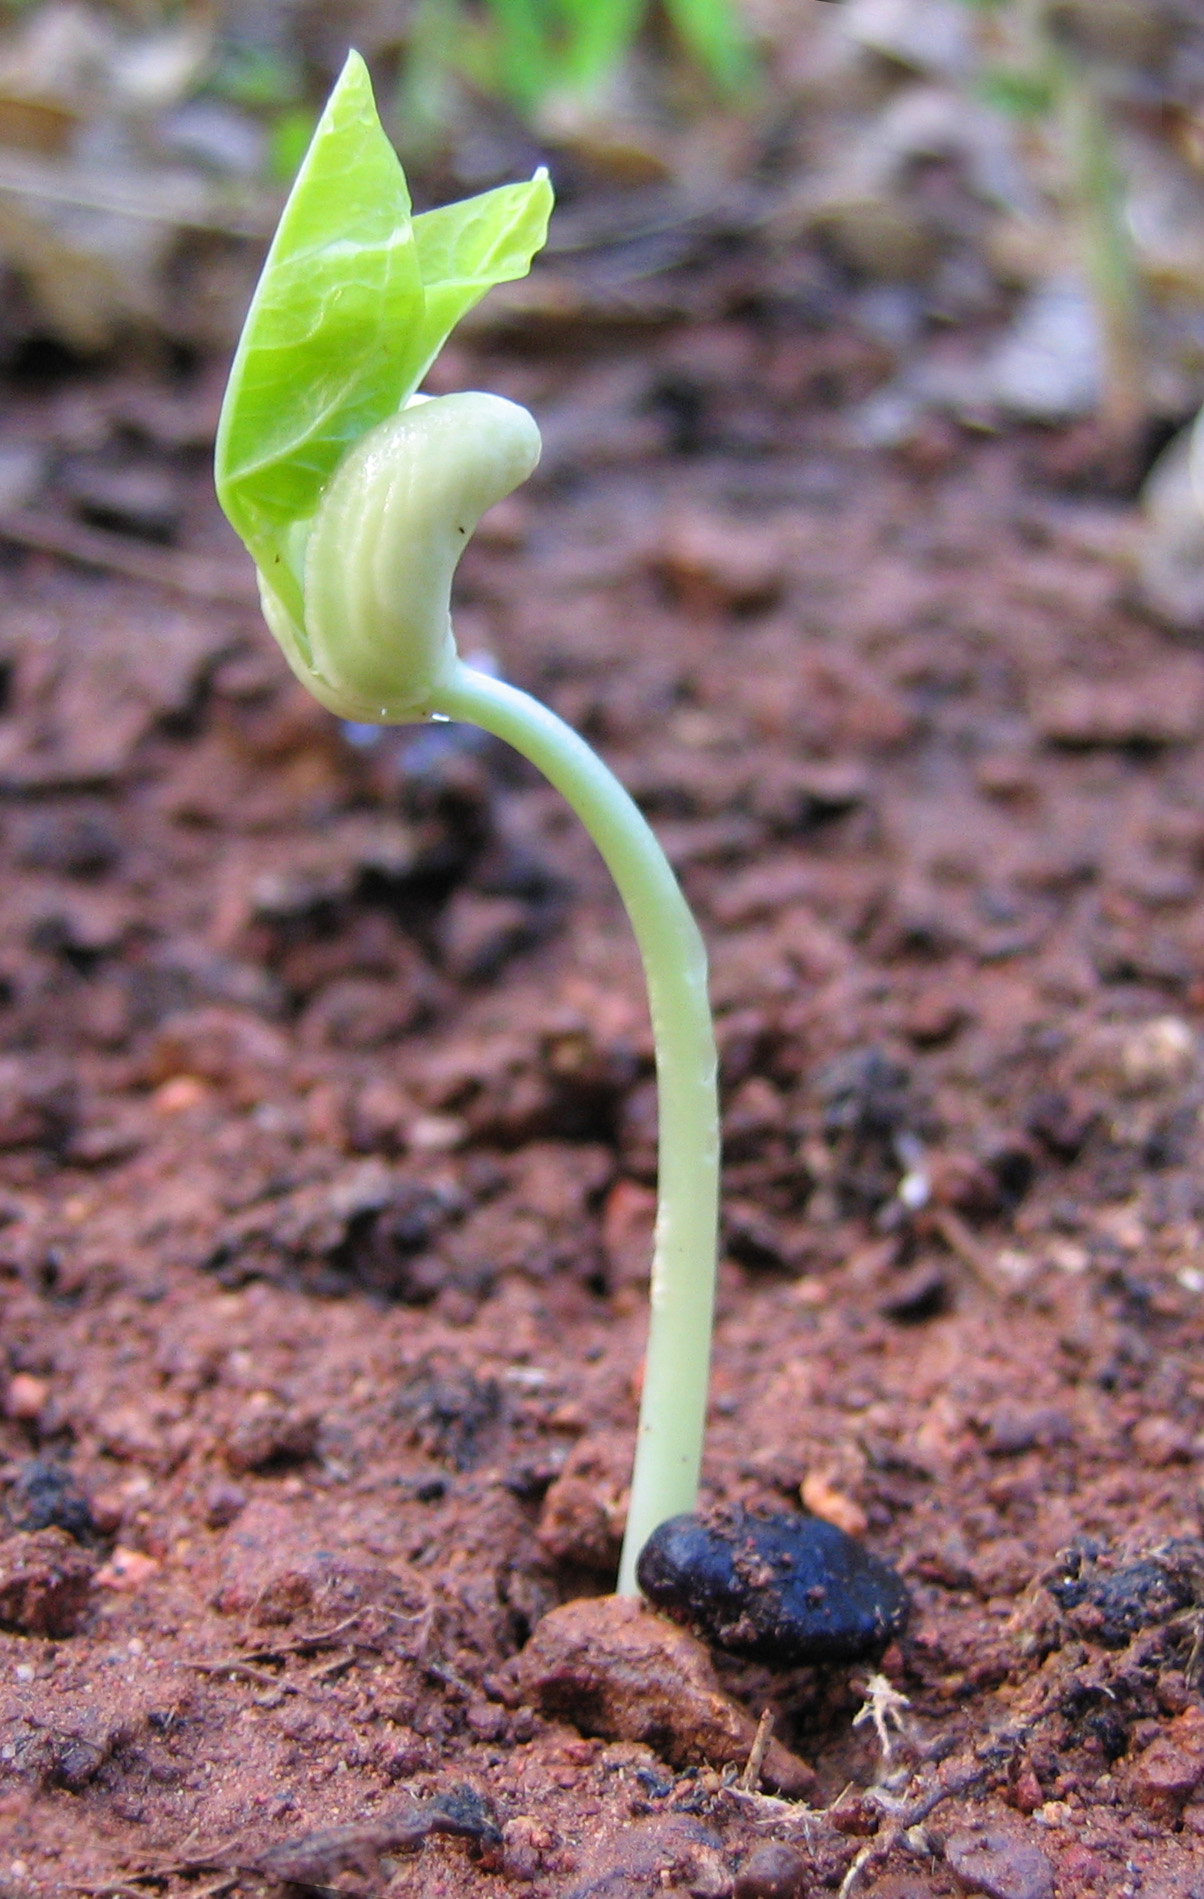 Pea_seed_germinating.jpg